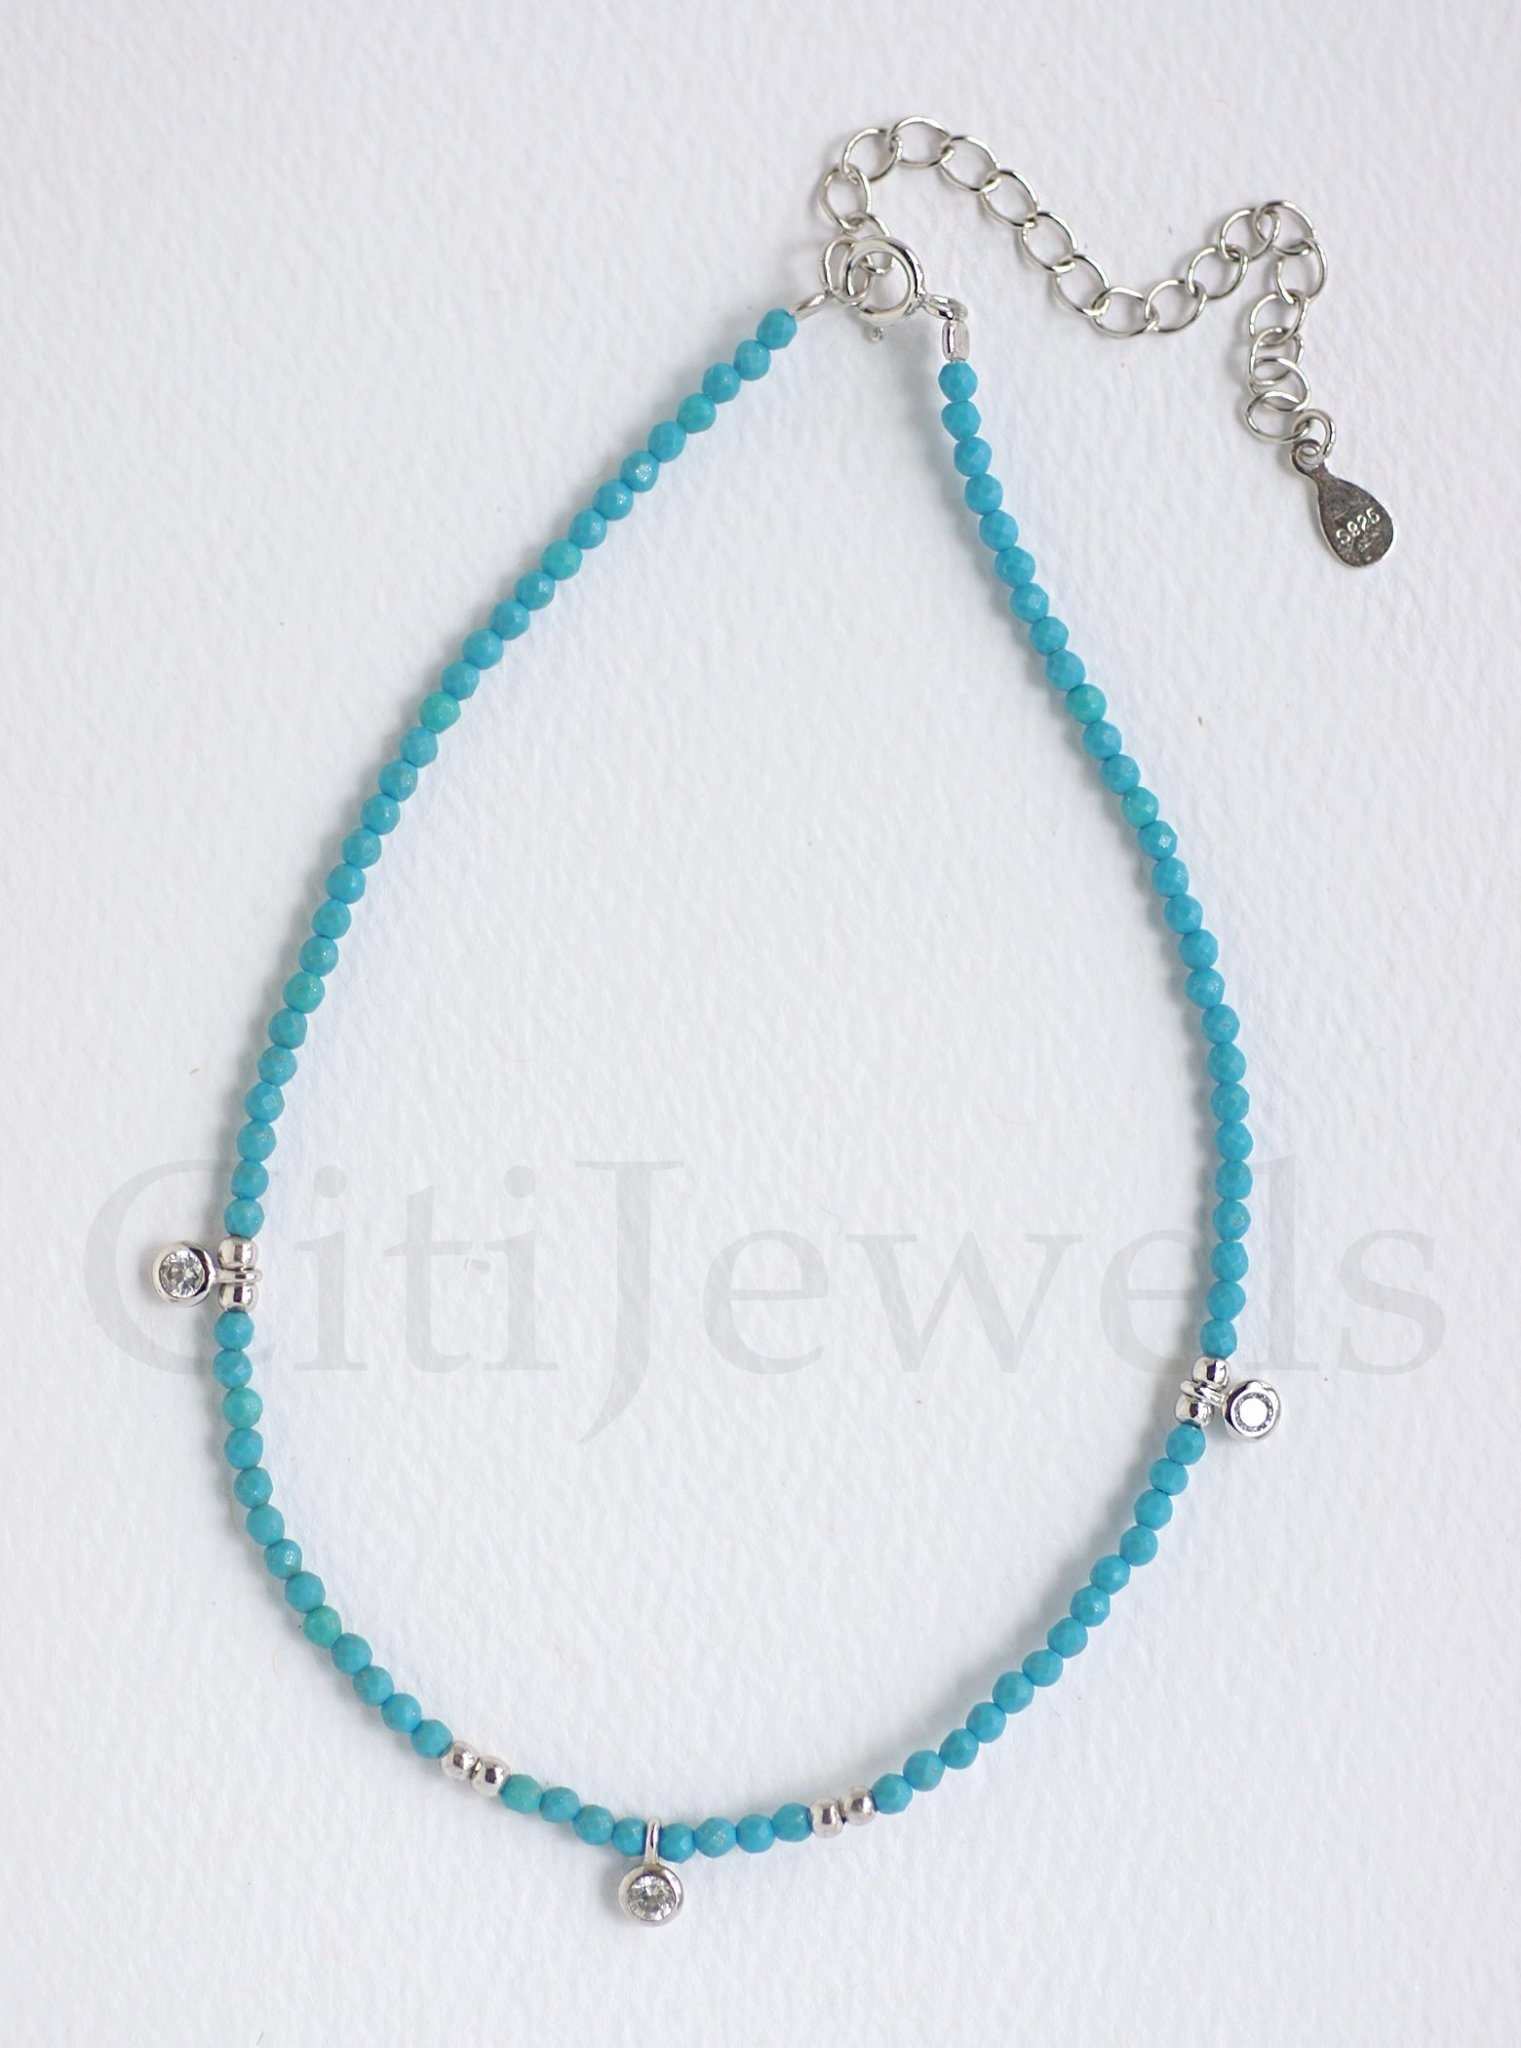 Beaded Anklet W/ Dangling CZ Stones